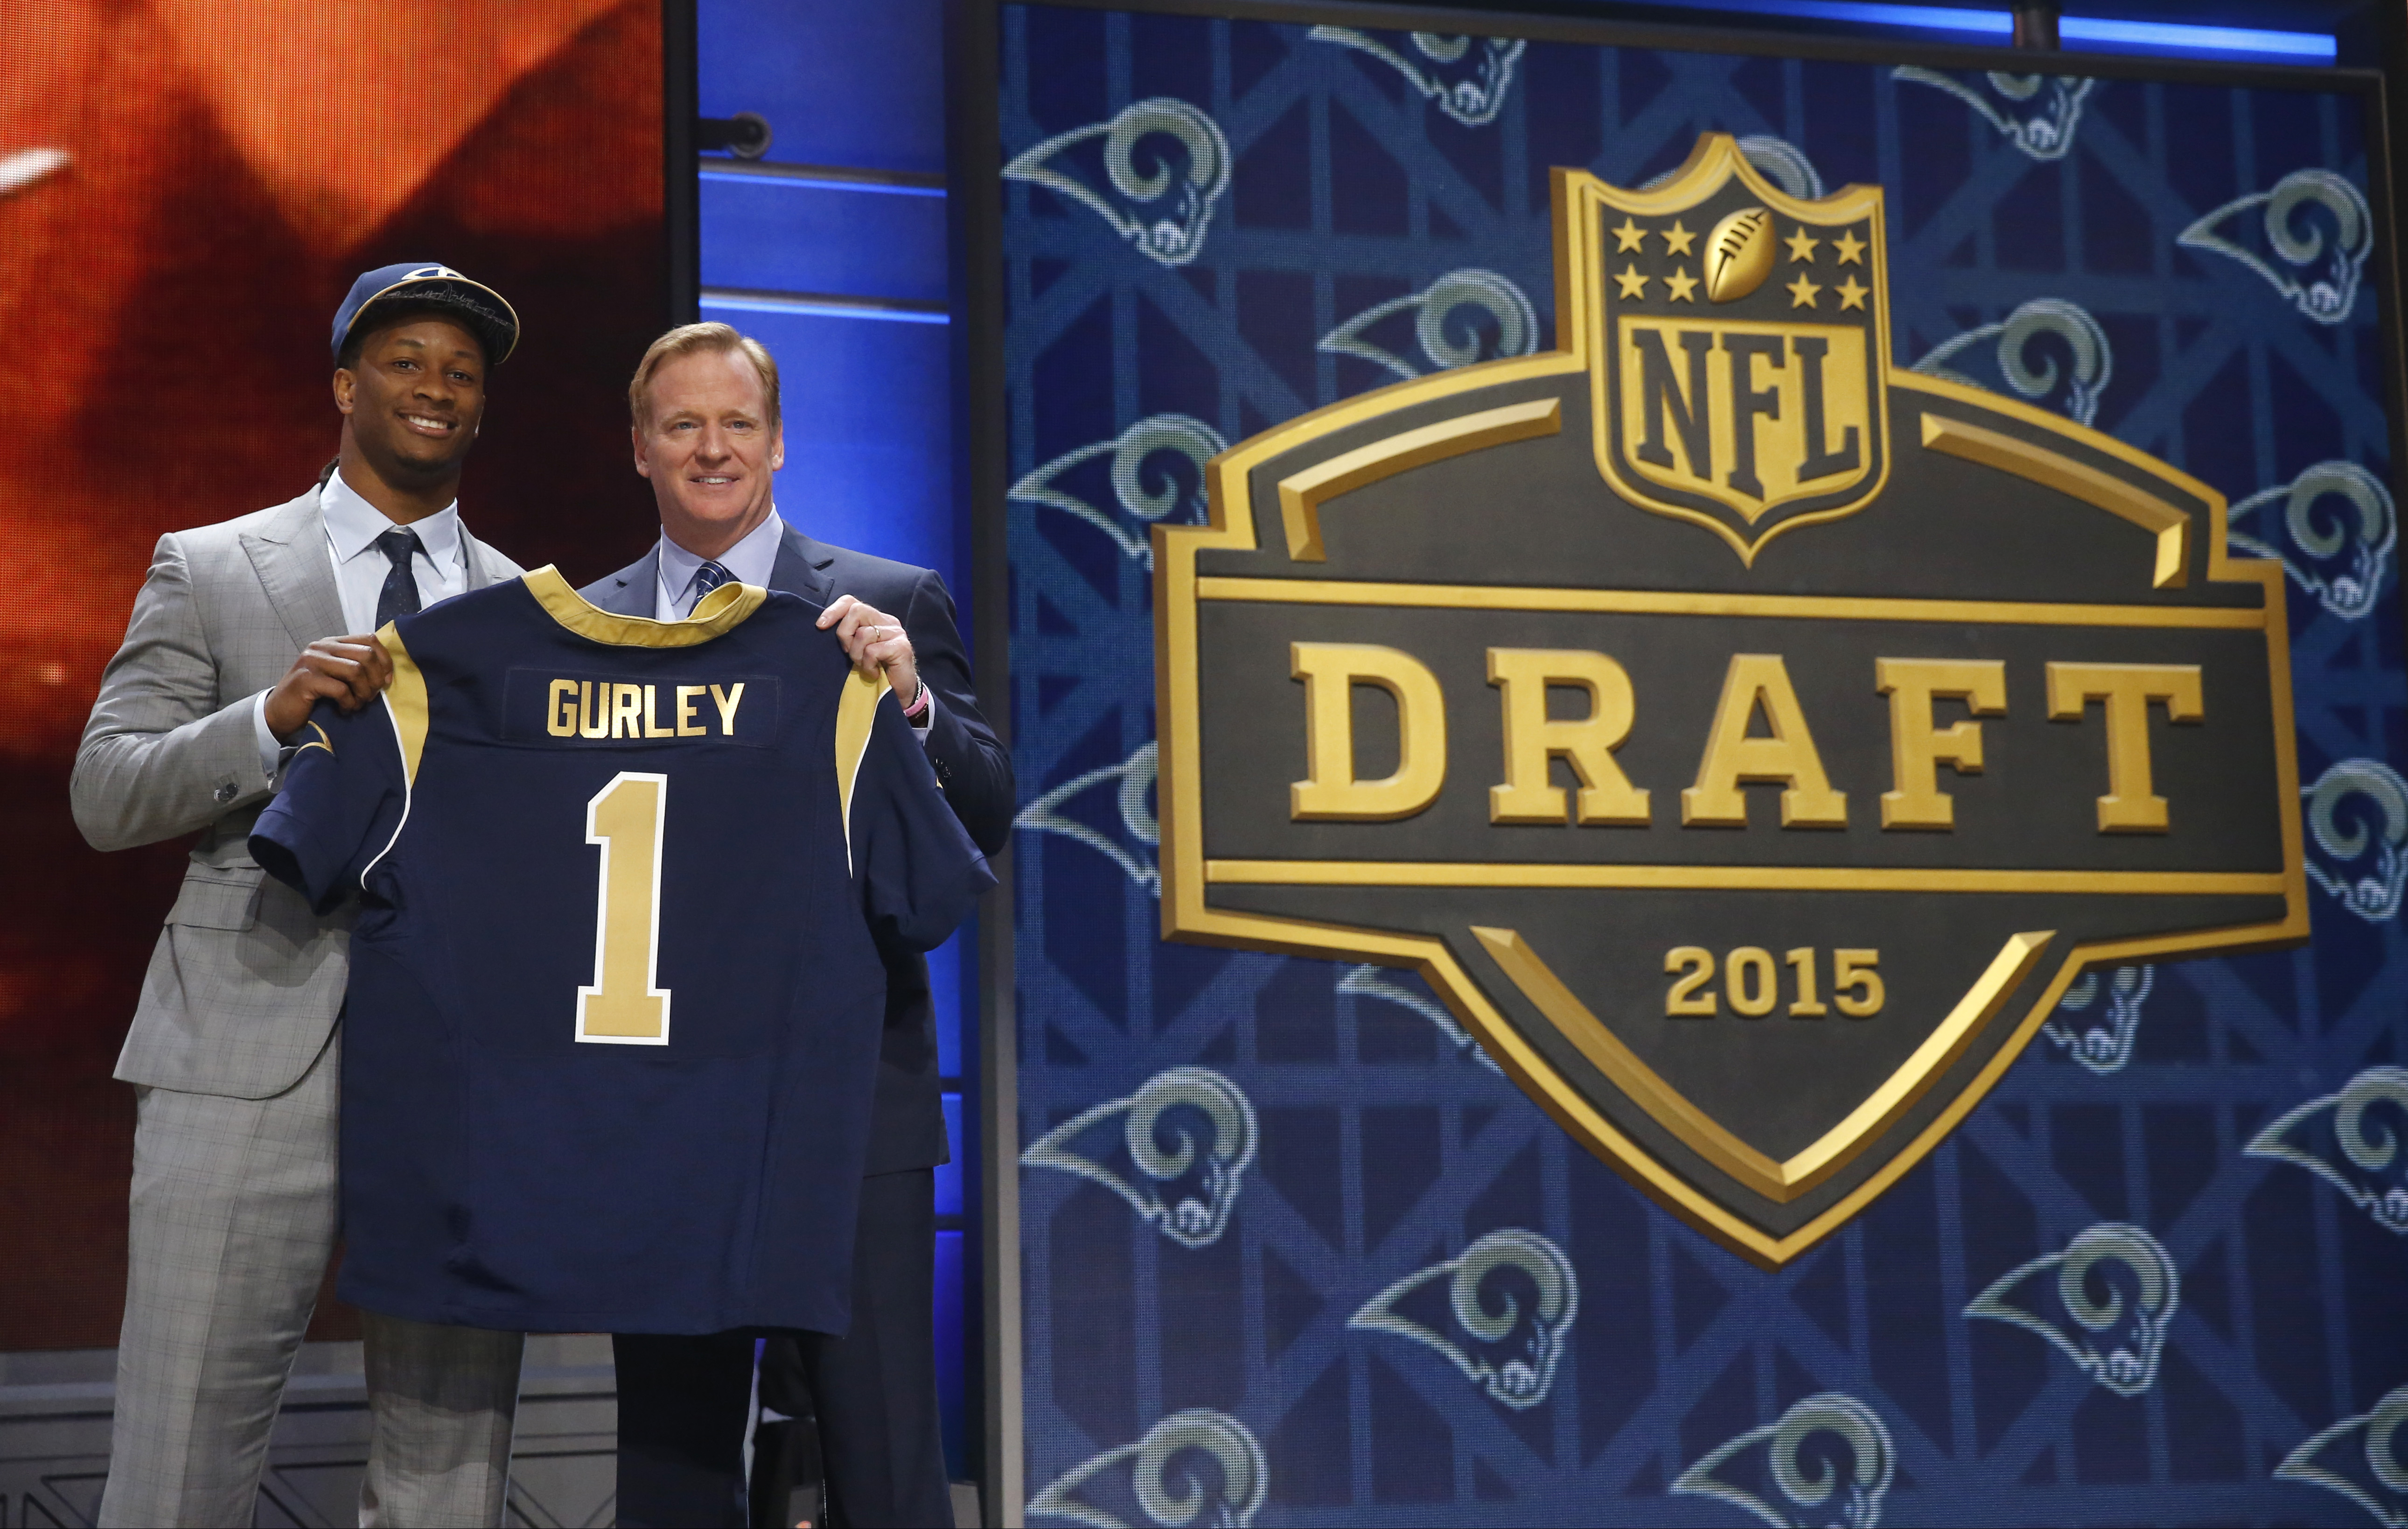 Georgia running back Todd Gurley poses for photos with NFL commissioner Roger Goodell after being selected by the St. Louis Rams as the 10th pick in the first round of the 2015 NFL Draft,  Thursday, April 30, 2015, in Chicago. (AP Photo/Charles Rex Arboga